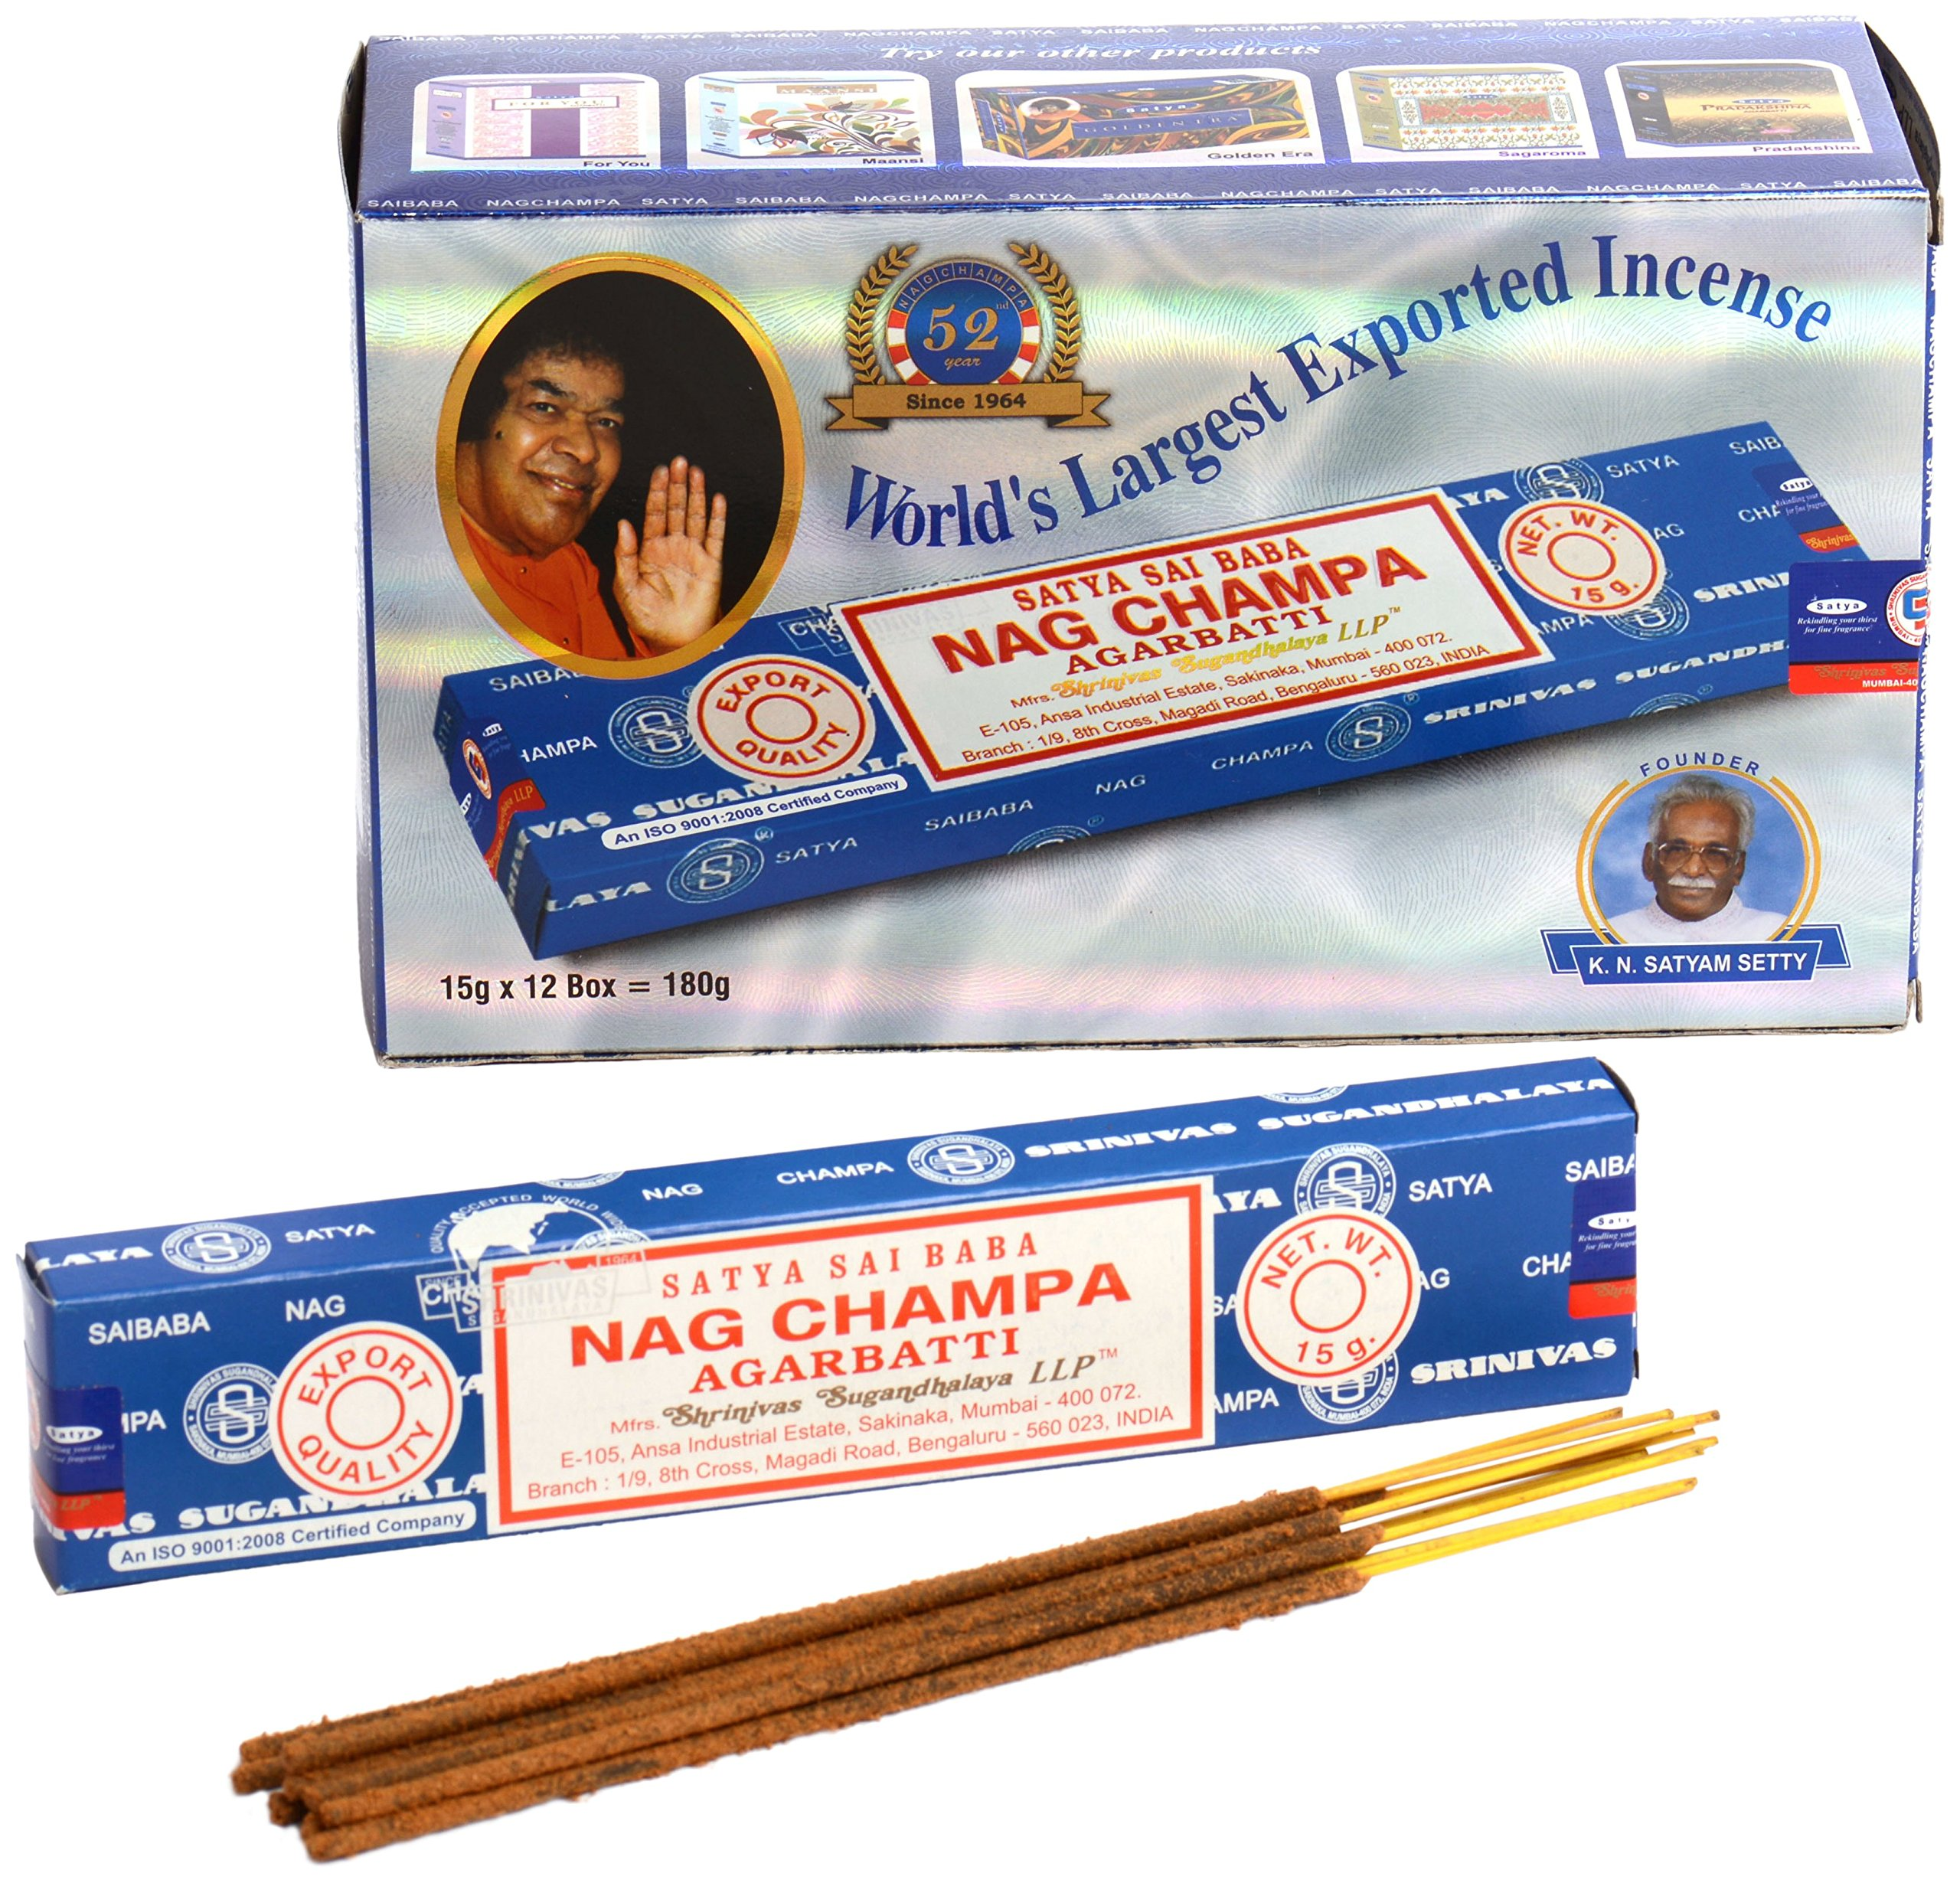 NAG CHAMPA INCENSE STICKS [12 PACKS]                Natural Patchouli Incense Sticks - By Satya Nag Champa - Pack Of 15 G X 12 Boxes - 180 G Total                Satya Assorted 12 Pack Incense Sticks Nag Champa, Celestial, Midnight, Patchouli, Musk, Oodh, Super Hit, Sunrise, Vanilla with Shakti Incense Stick by BUYER EXPRESS